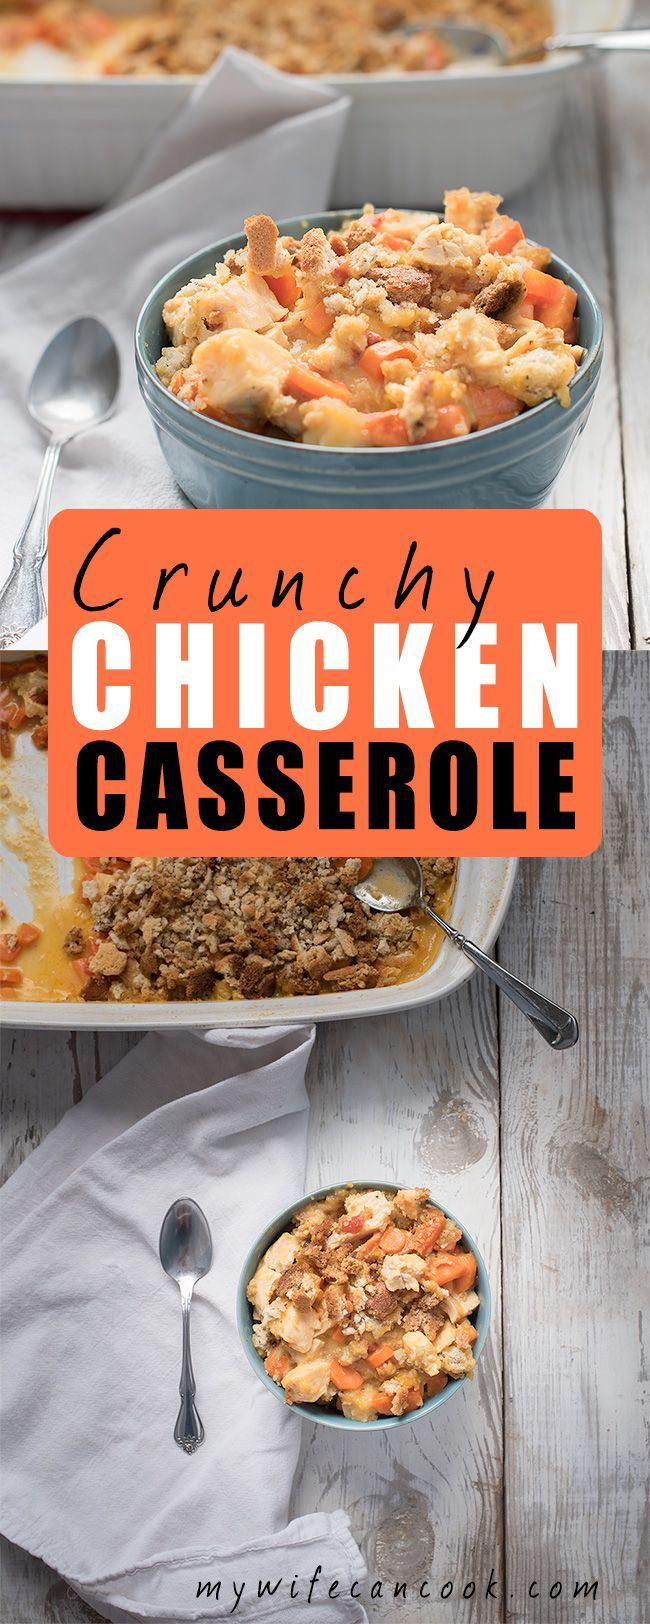 If you're looking for the perfect fall casserole you'll love the easy crunchy chicken casserole recipe. It's a great fall/autumn recipe which features chicken, carrots, a cheesy sauce and breadcrumbs. Fall casseroles are perfect for the the busy back-to-school season when you don't have lots of time and you need easy family meals. This simple chicken casserole is a family favorite dish. So fulfill your casserole craving and enjoy an easy fall recipe tonight. And leftovers tomorro